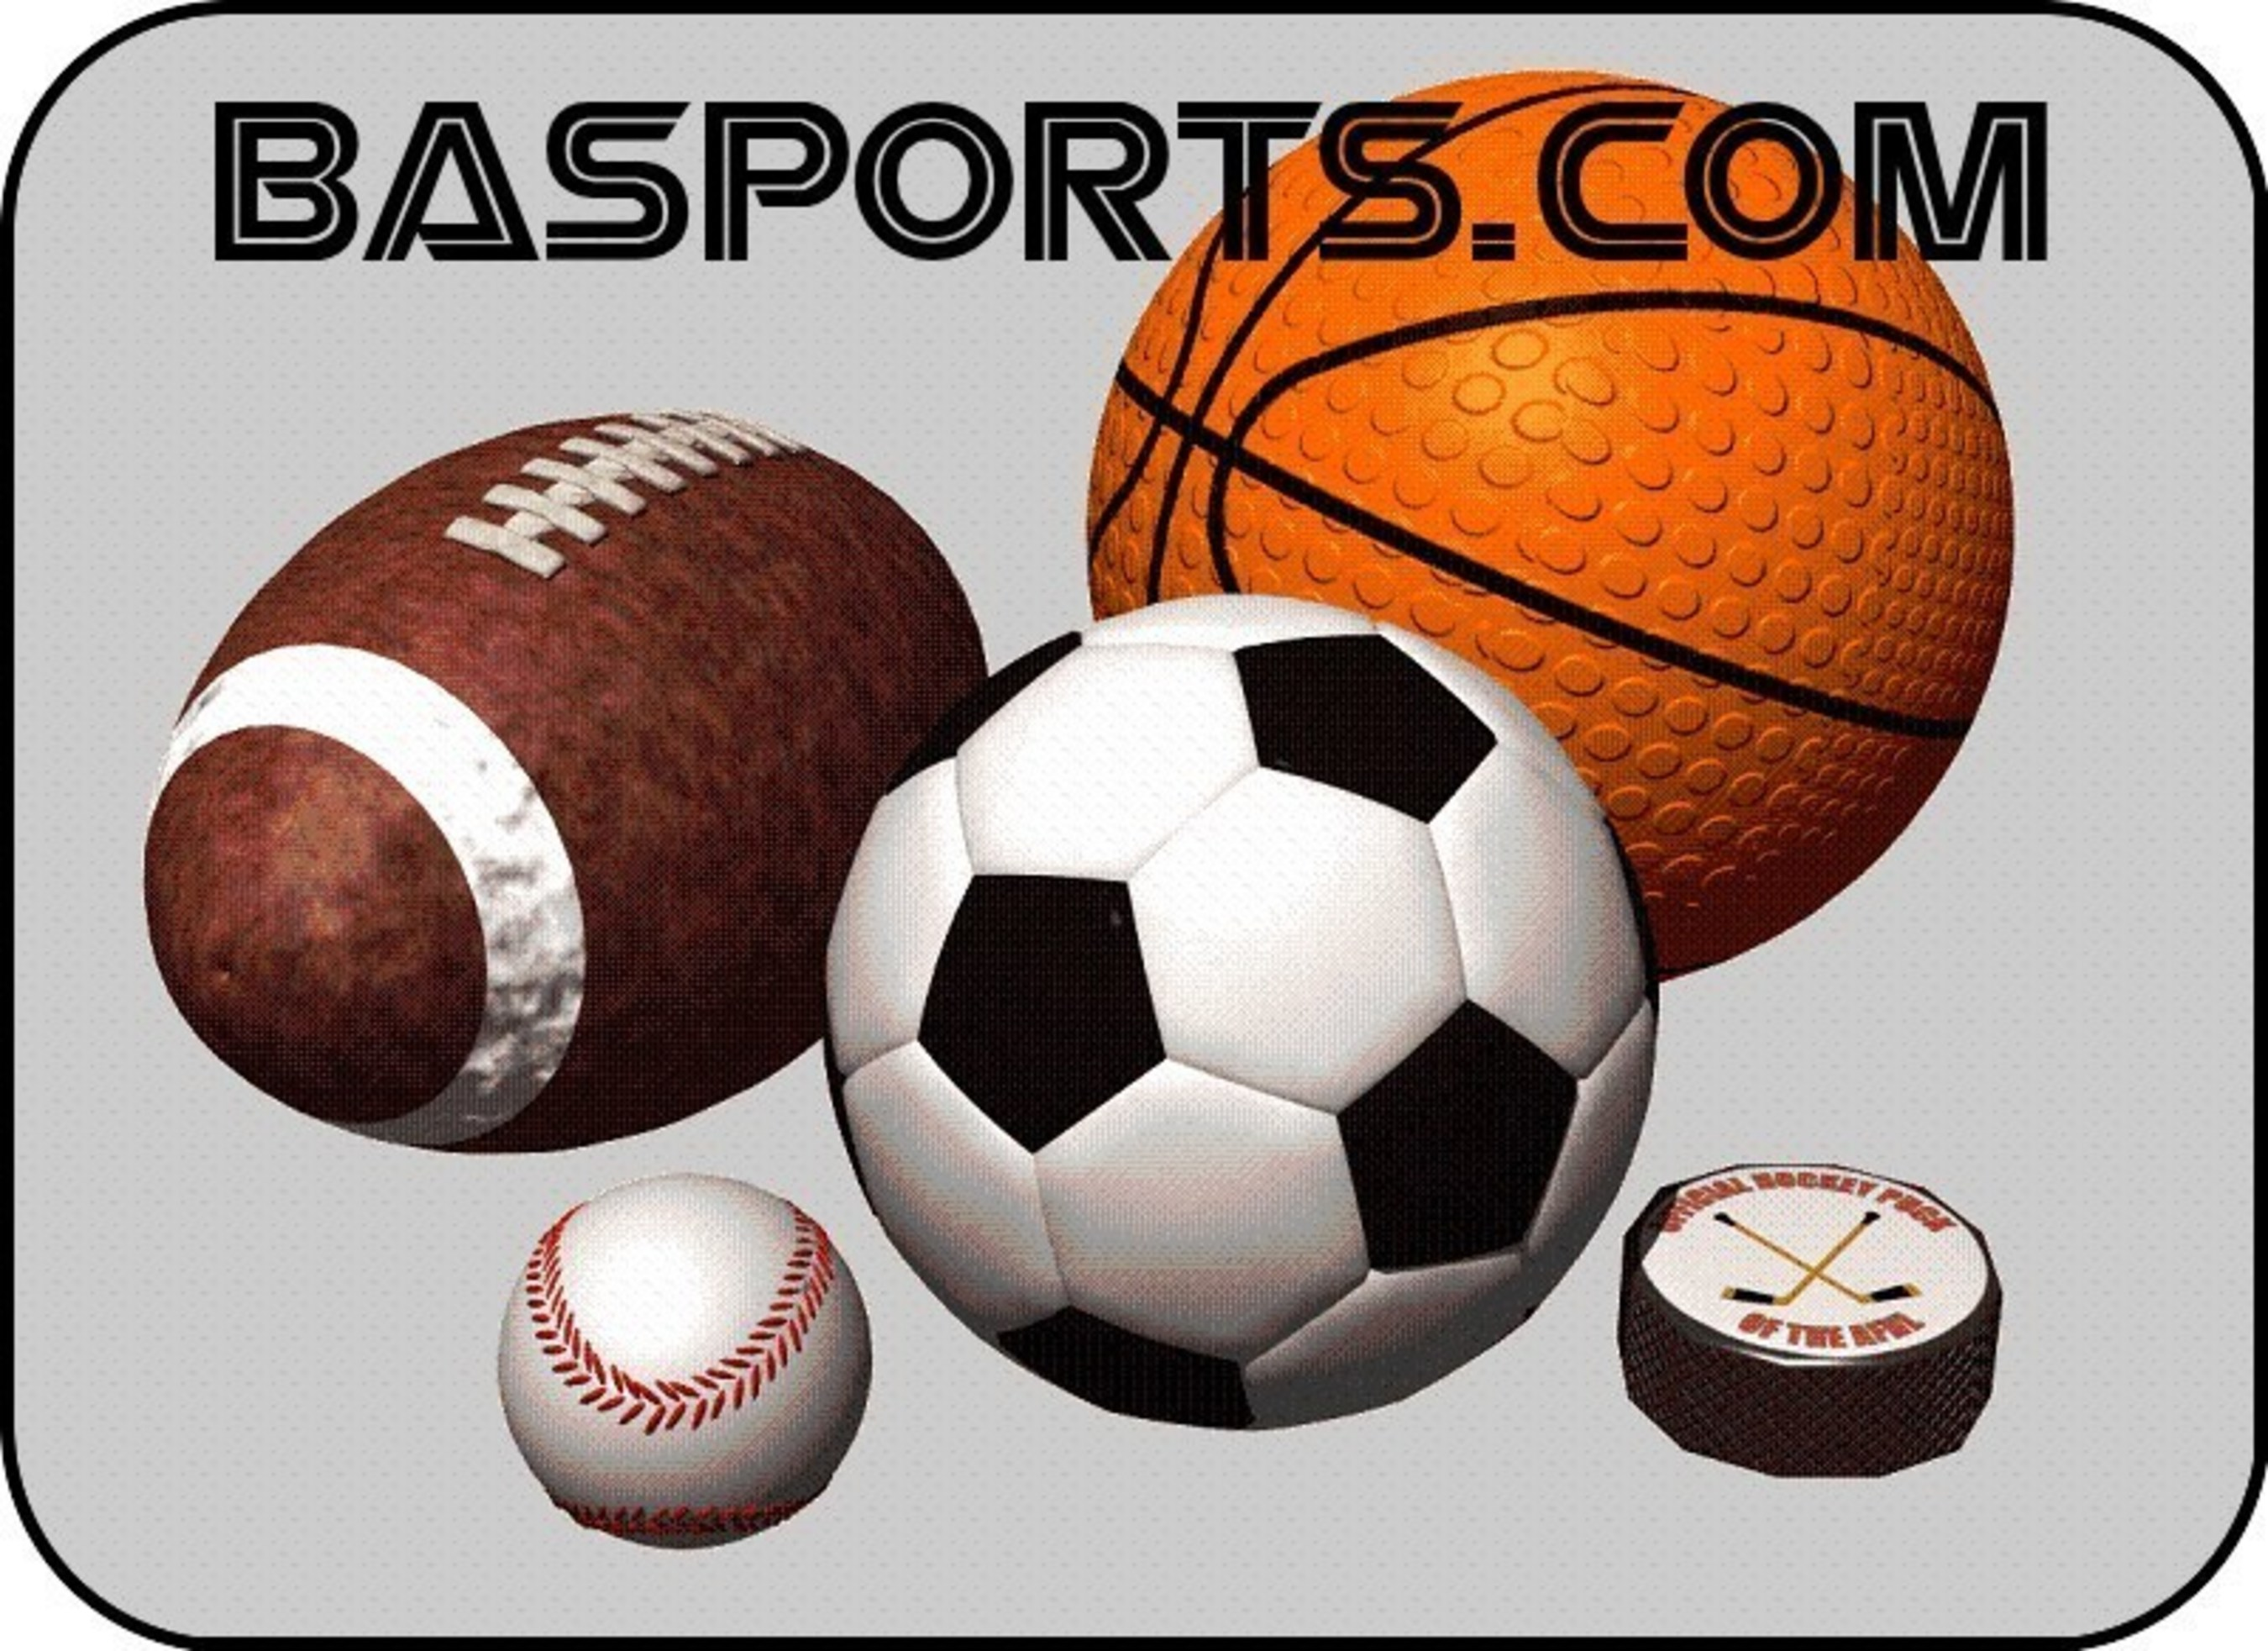 BAsports.com has been the world's premier sports information service for decades